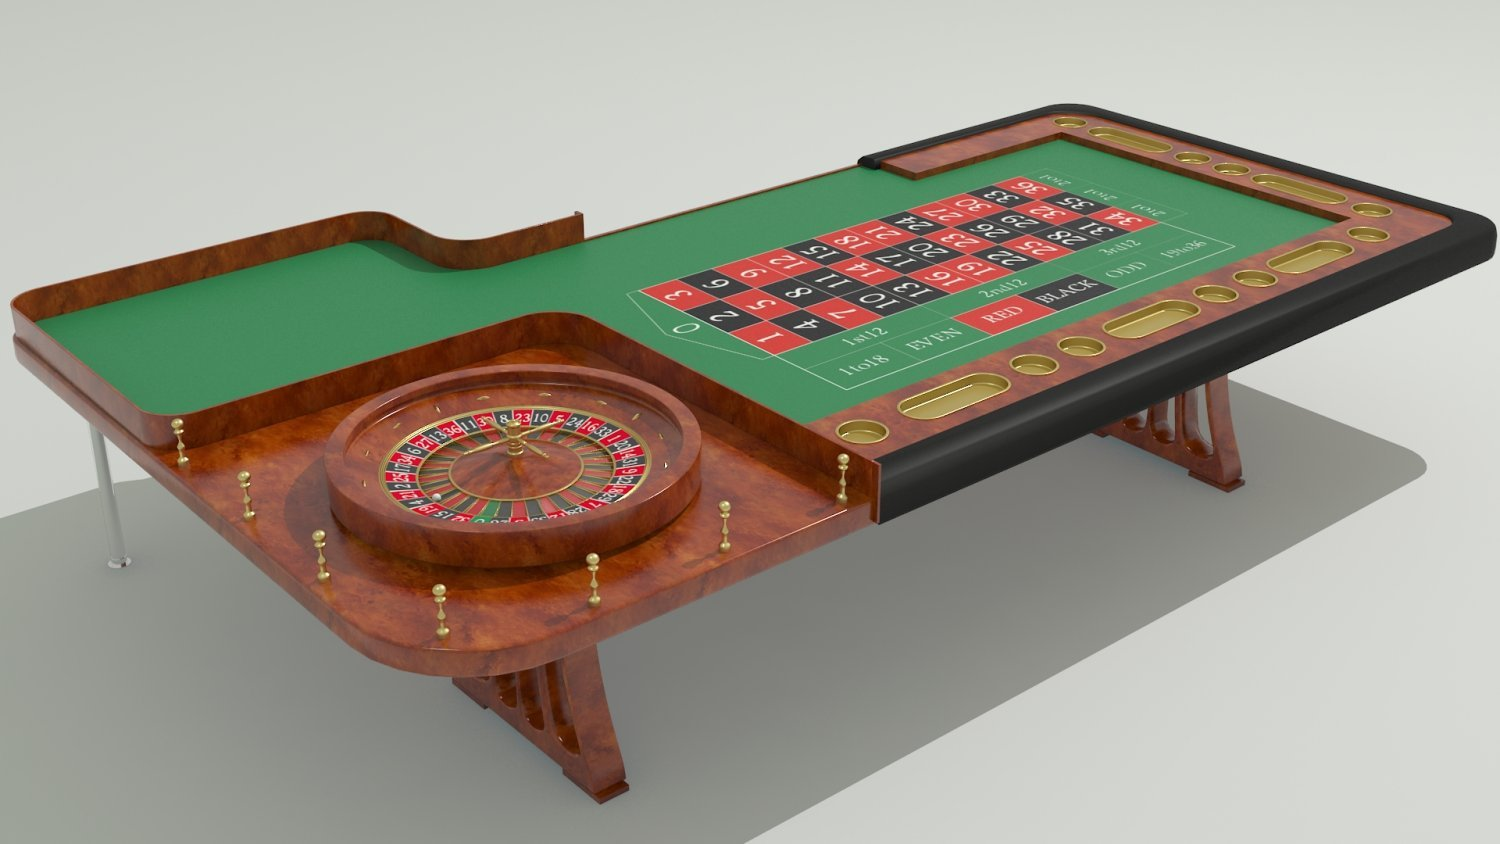 casino roulette table by gogita 3docean. Black Bedroom Furniture Sets. Home Design Ideas